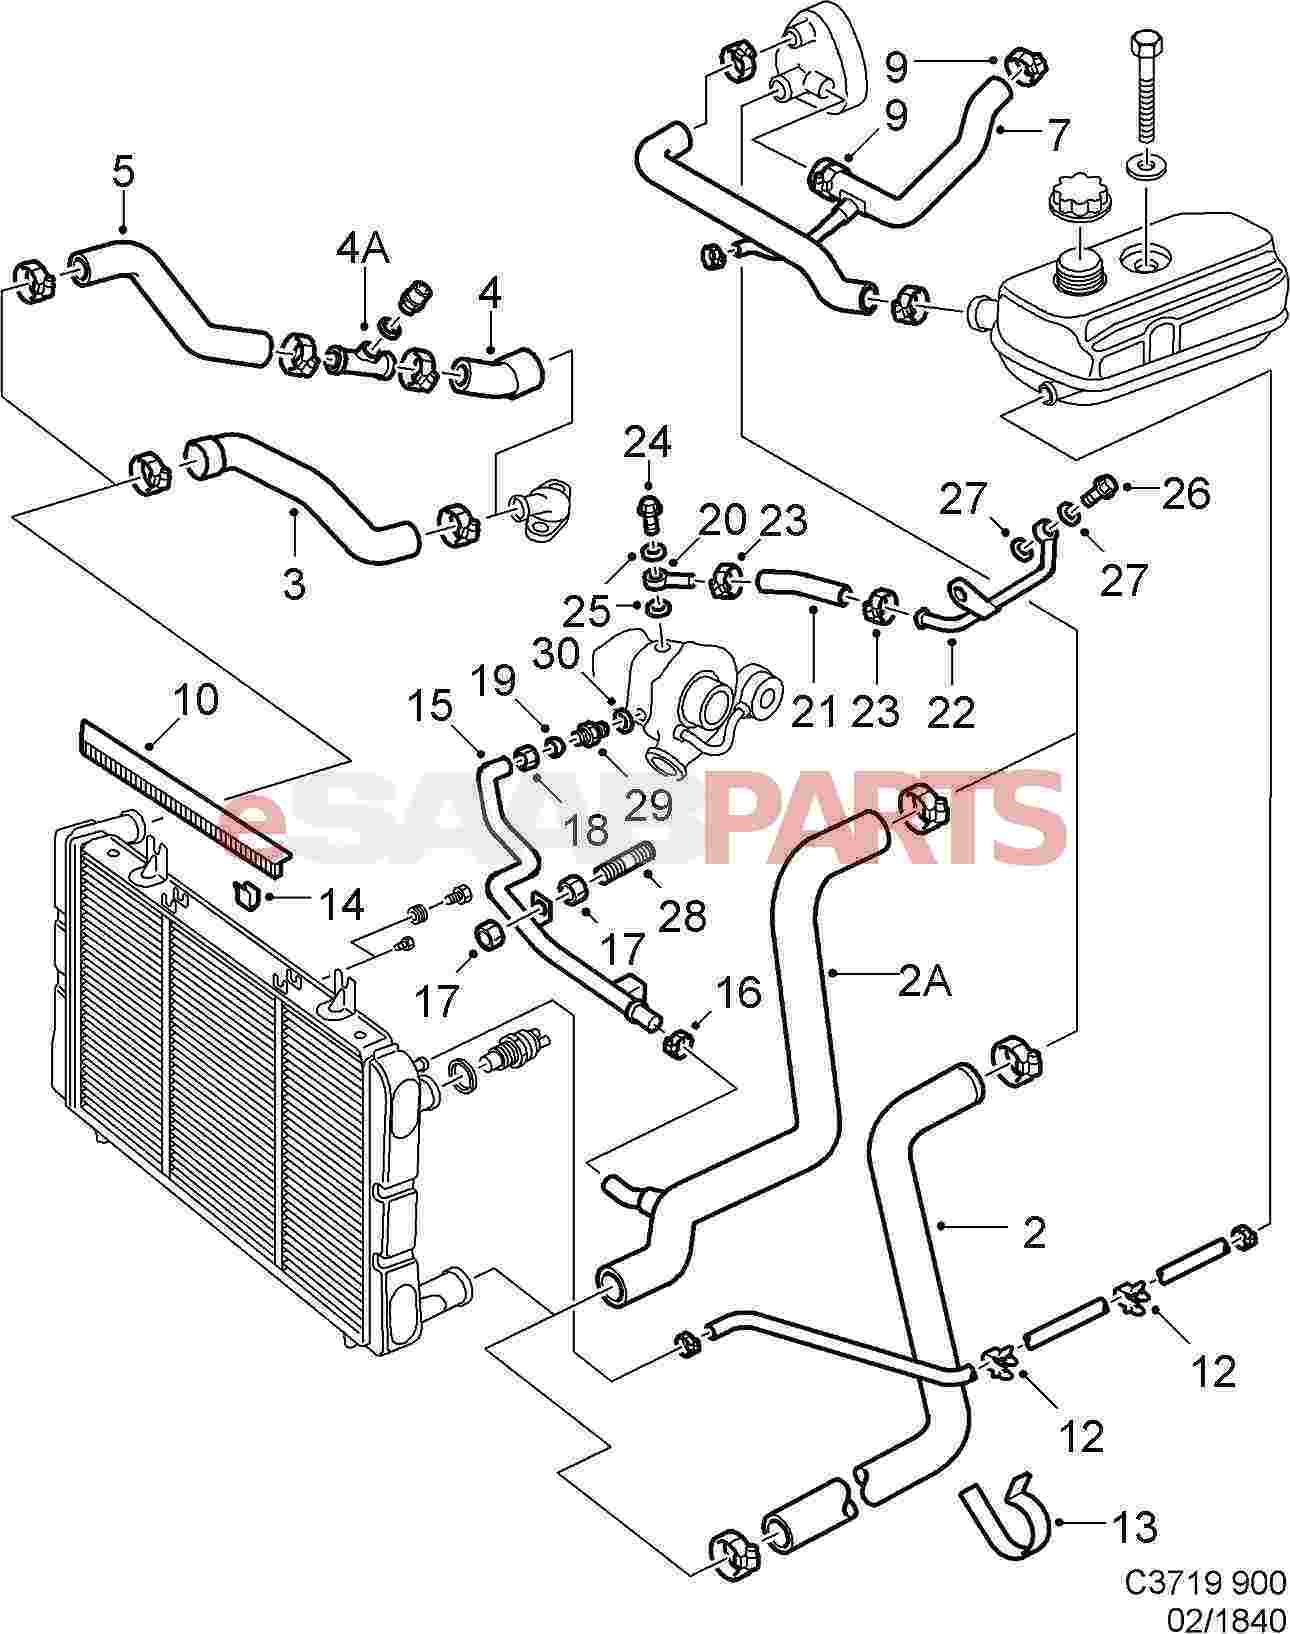 Audi A4 Engine Parts Diagram Archive Of Automotive Wiring 2004 Harness 92150435 Saab Gasket Genuine From Esaabparts Com Rh Marvellous